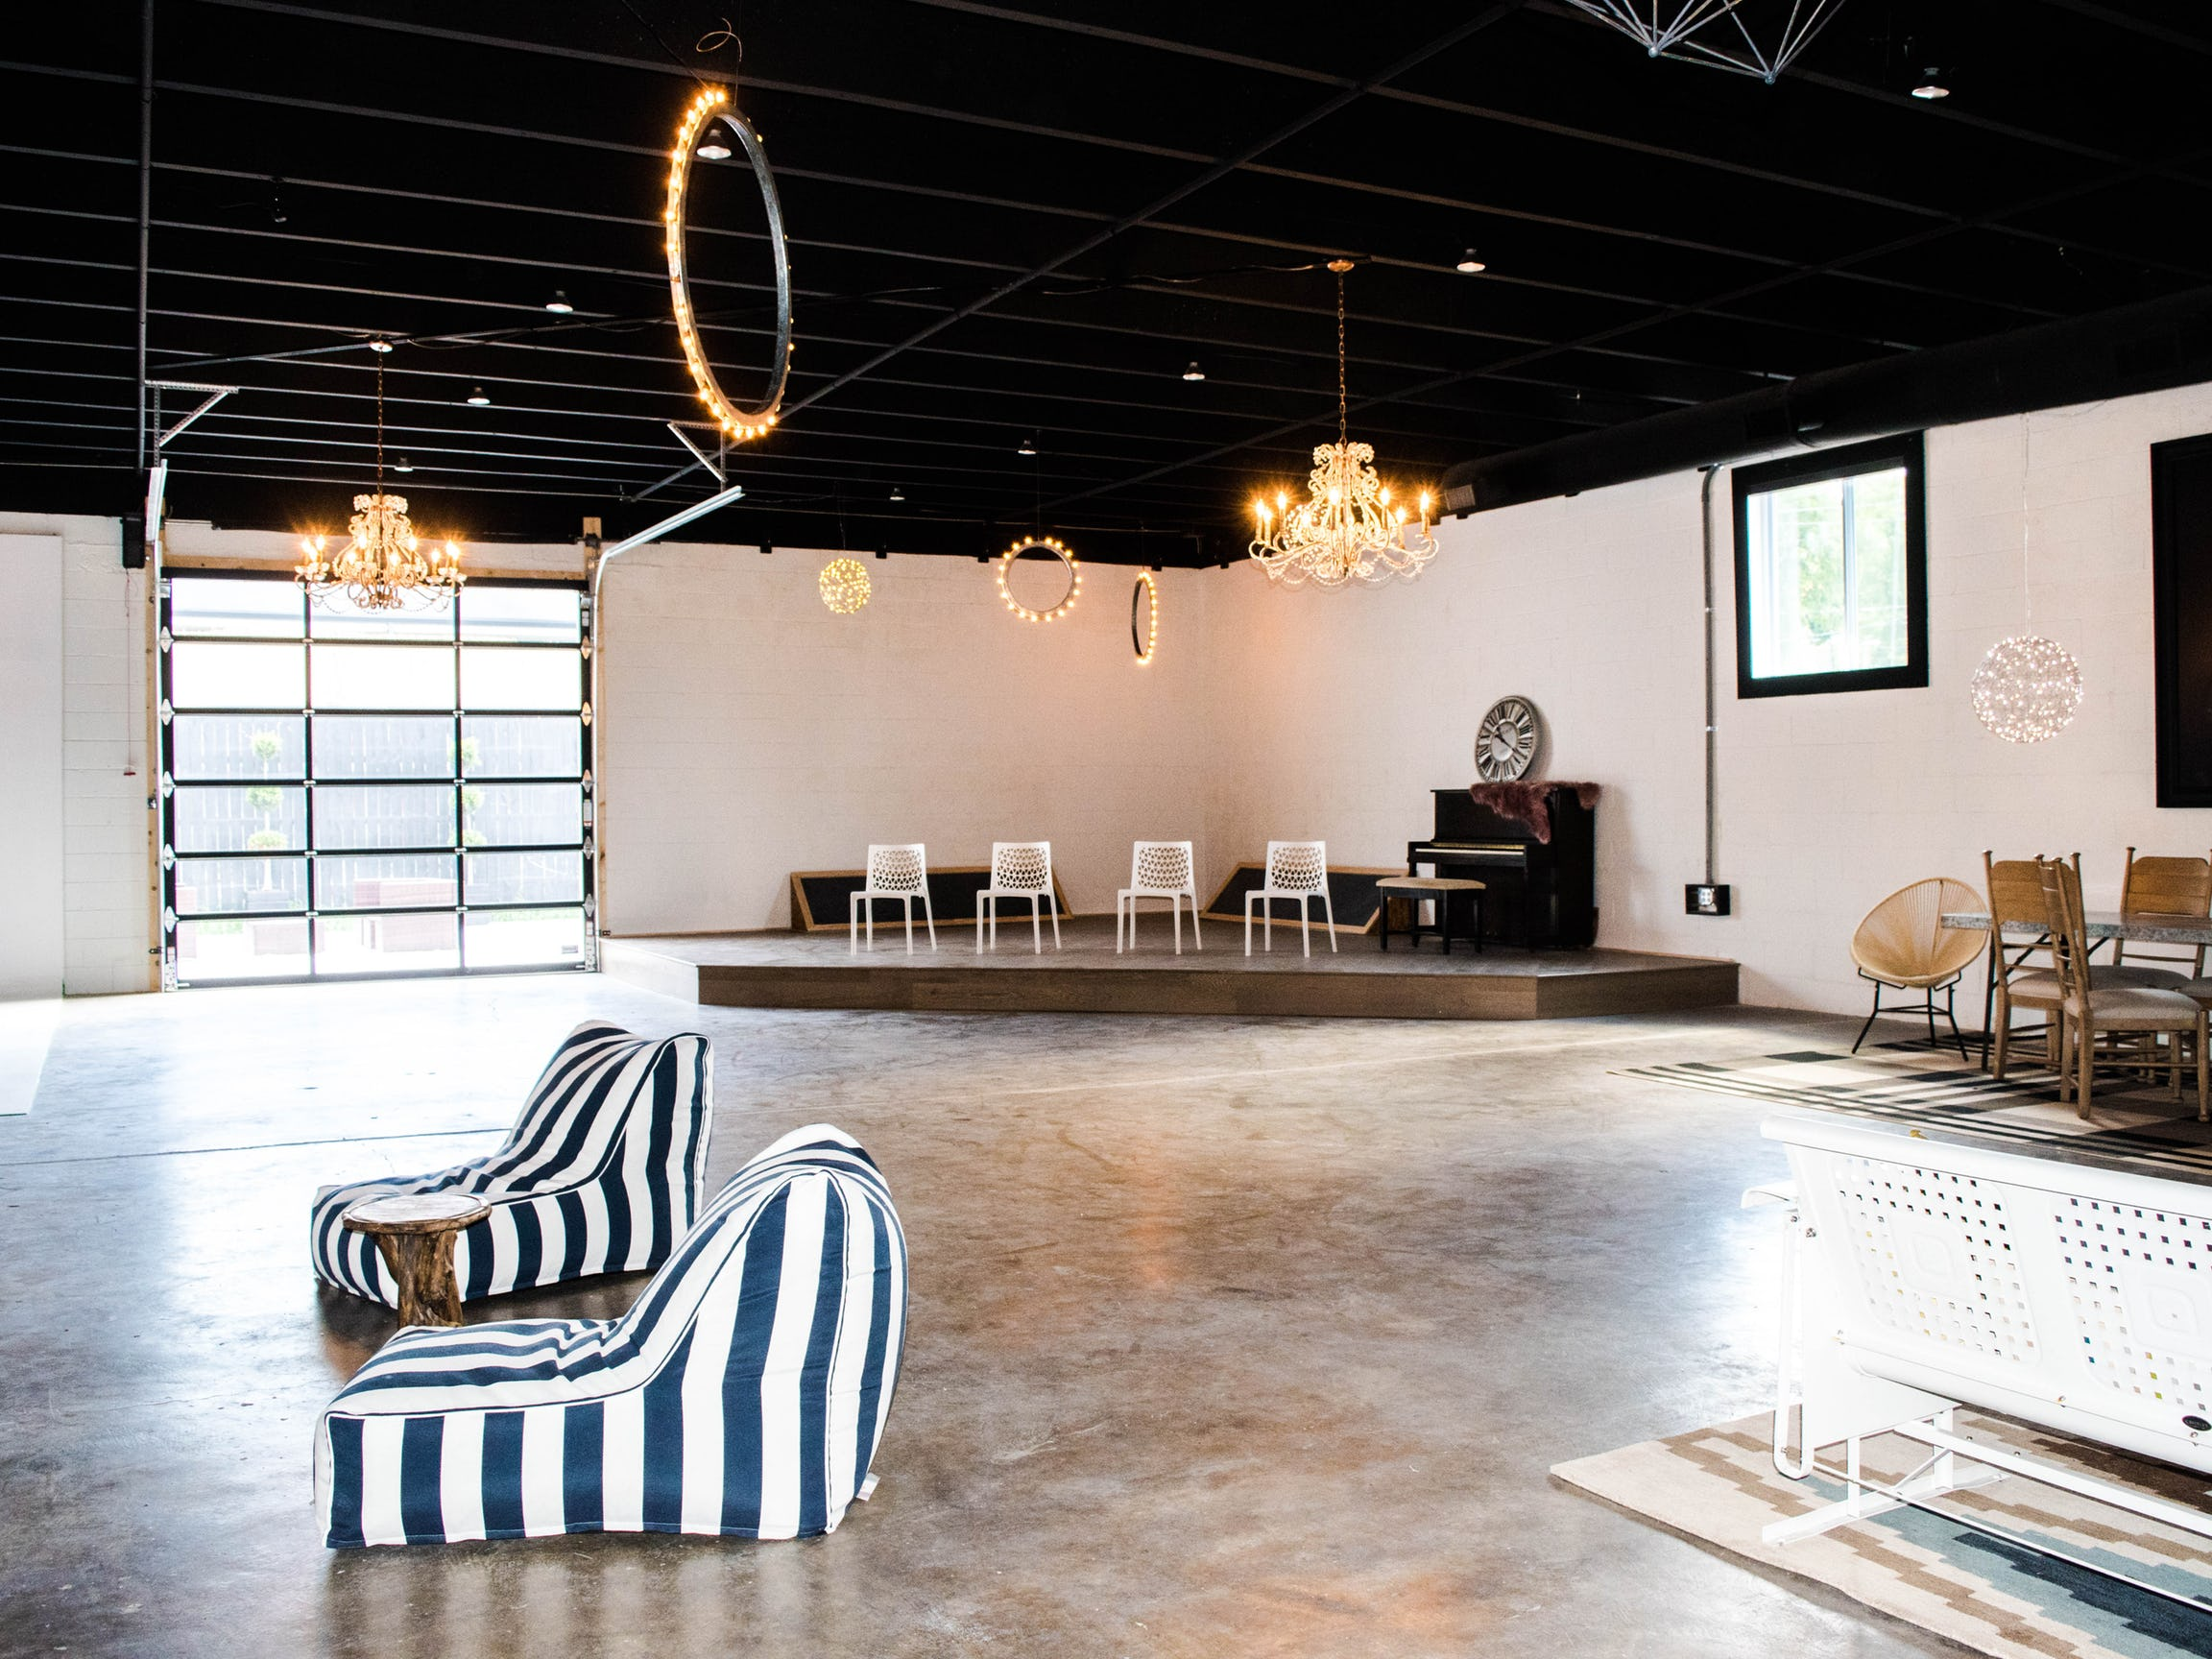 Top 12 Party Space Rental Locations Near Me Nashville - AVVAY